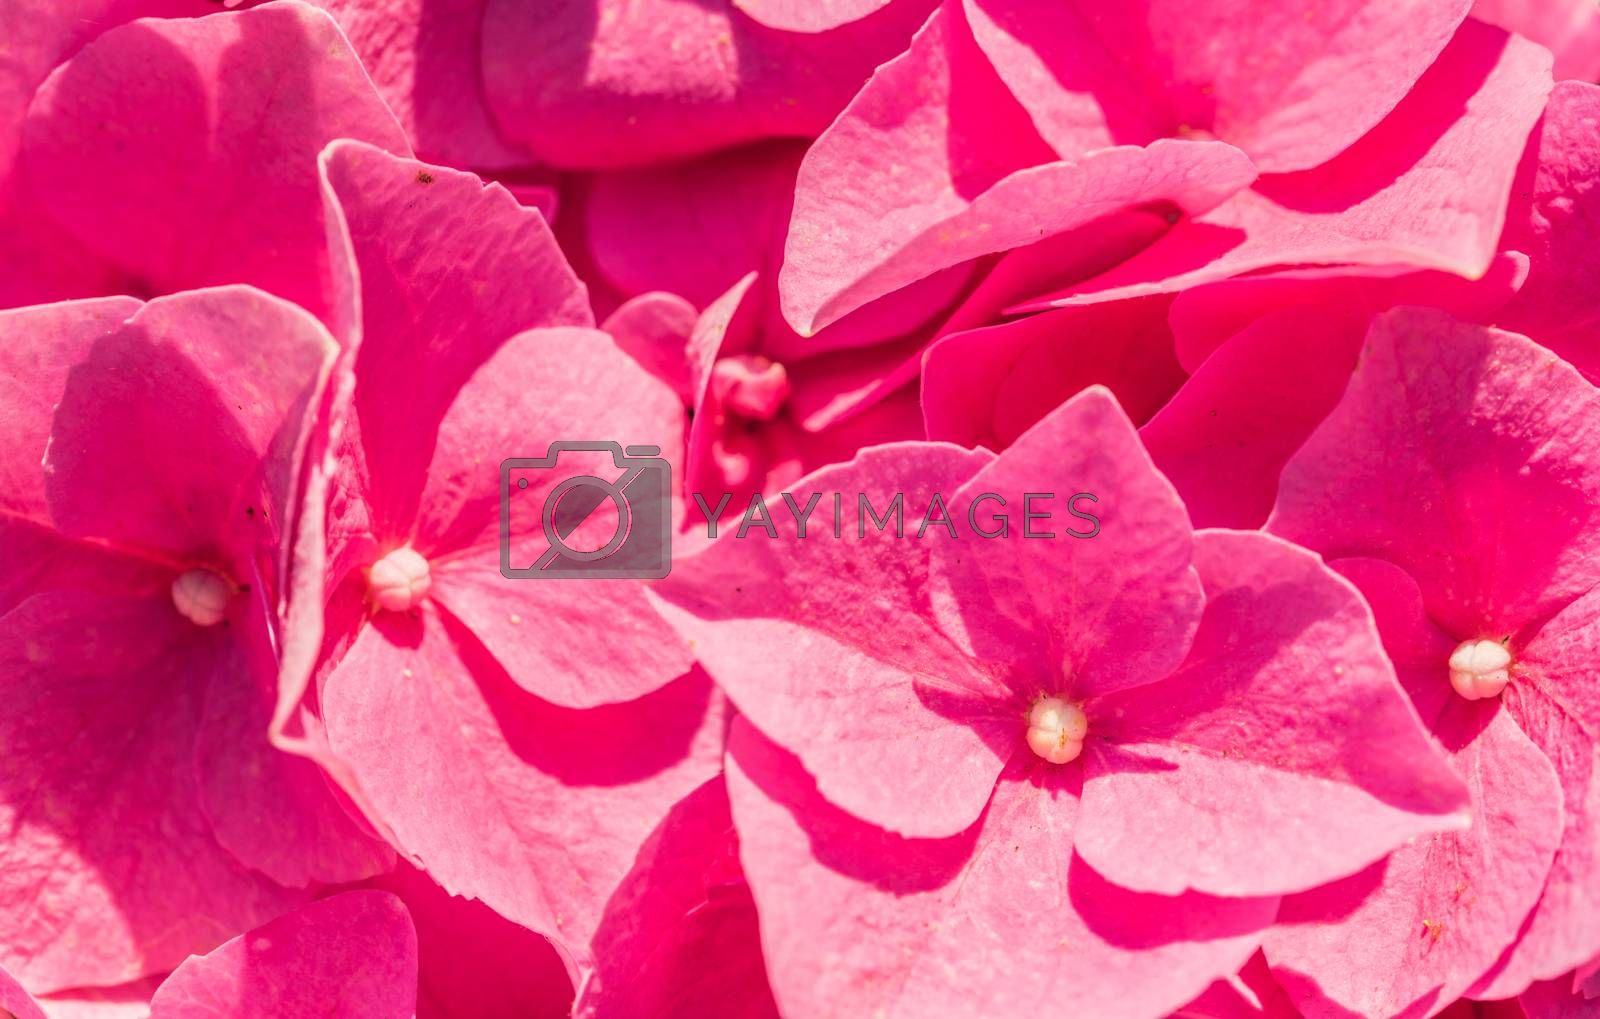 Macro of pink hydrangea blossoms covered with sunlight